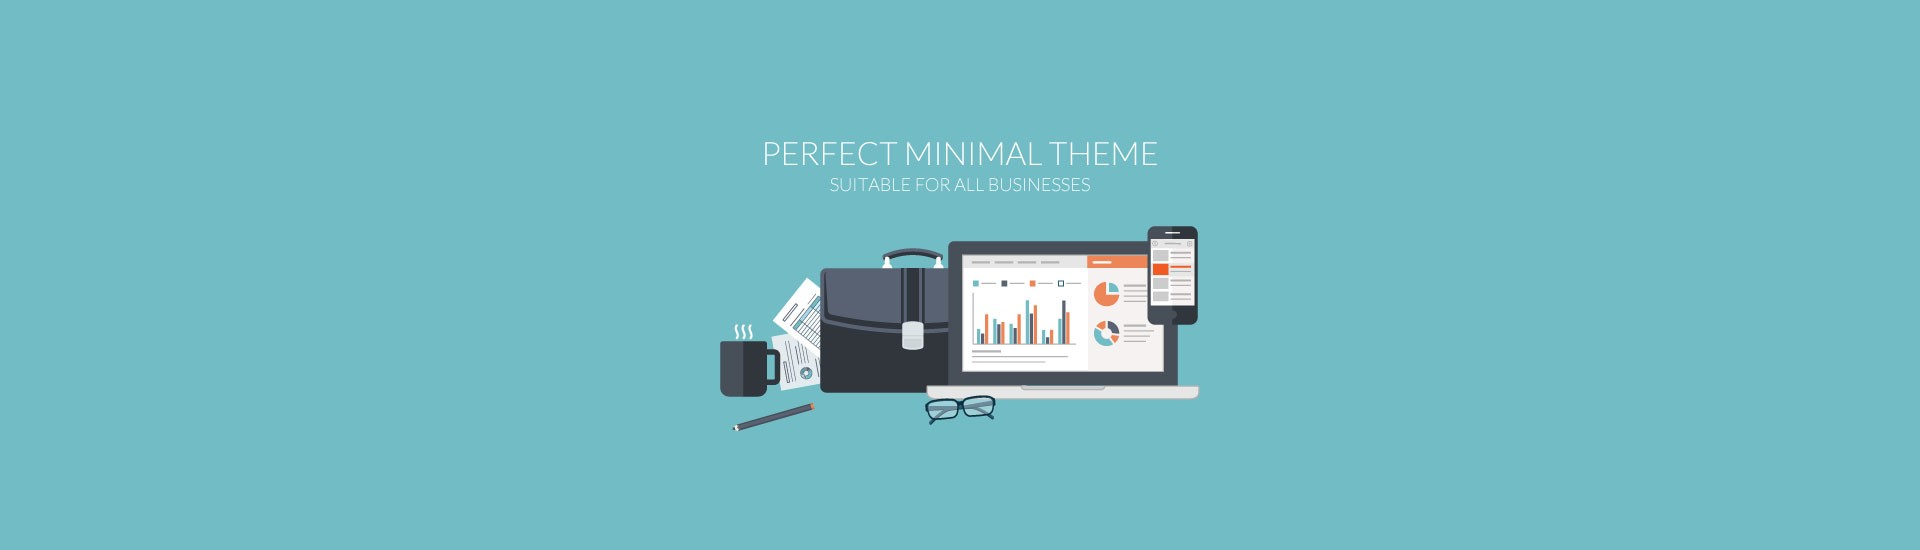 Minimal Designed WordPress Theme